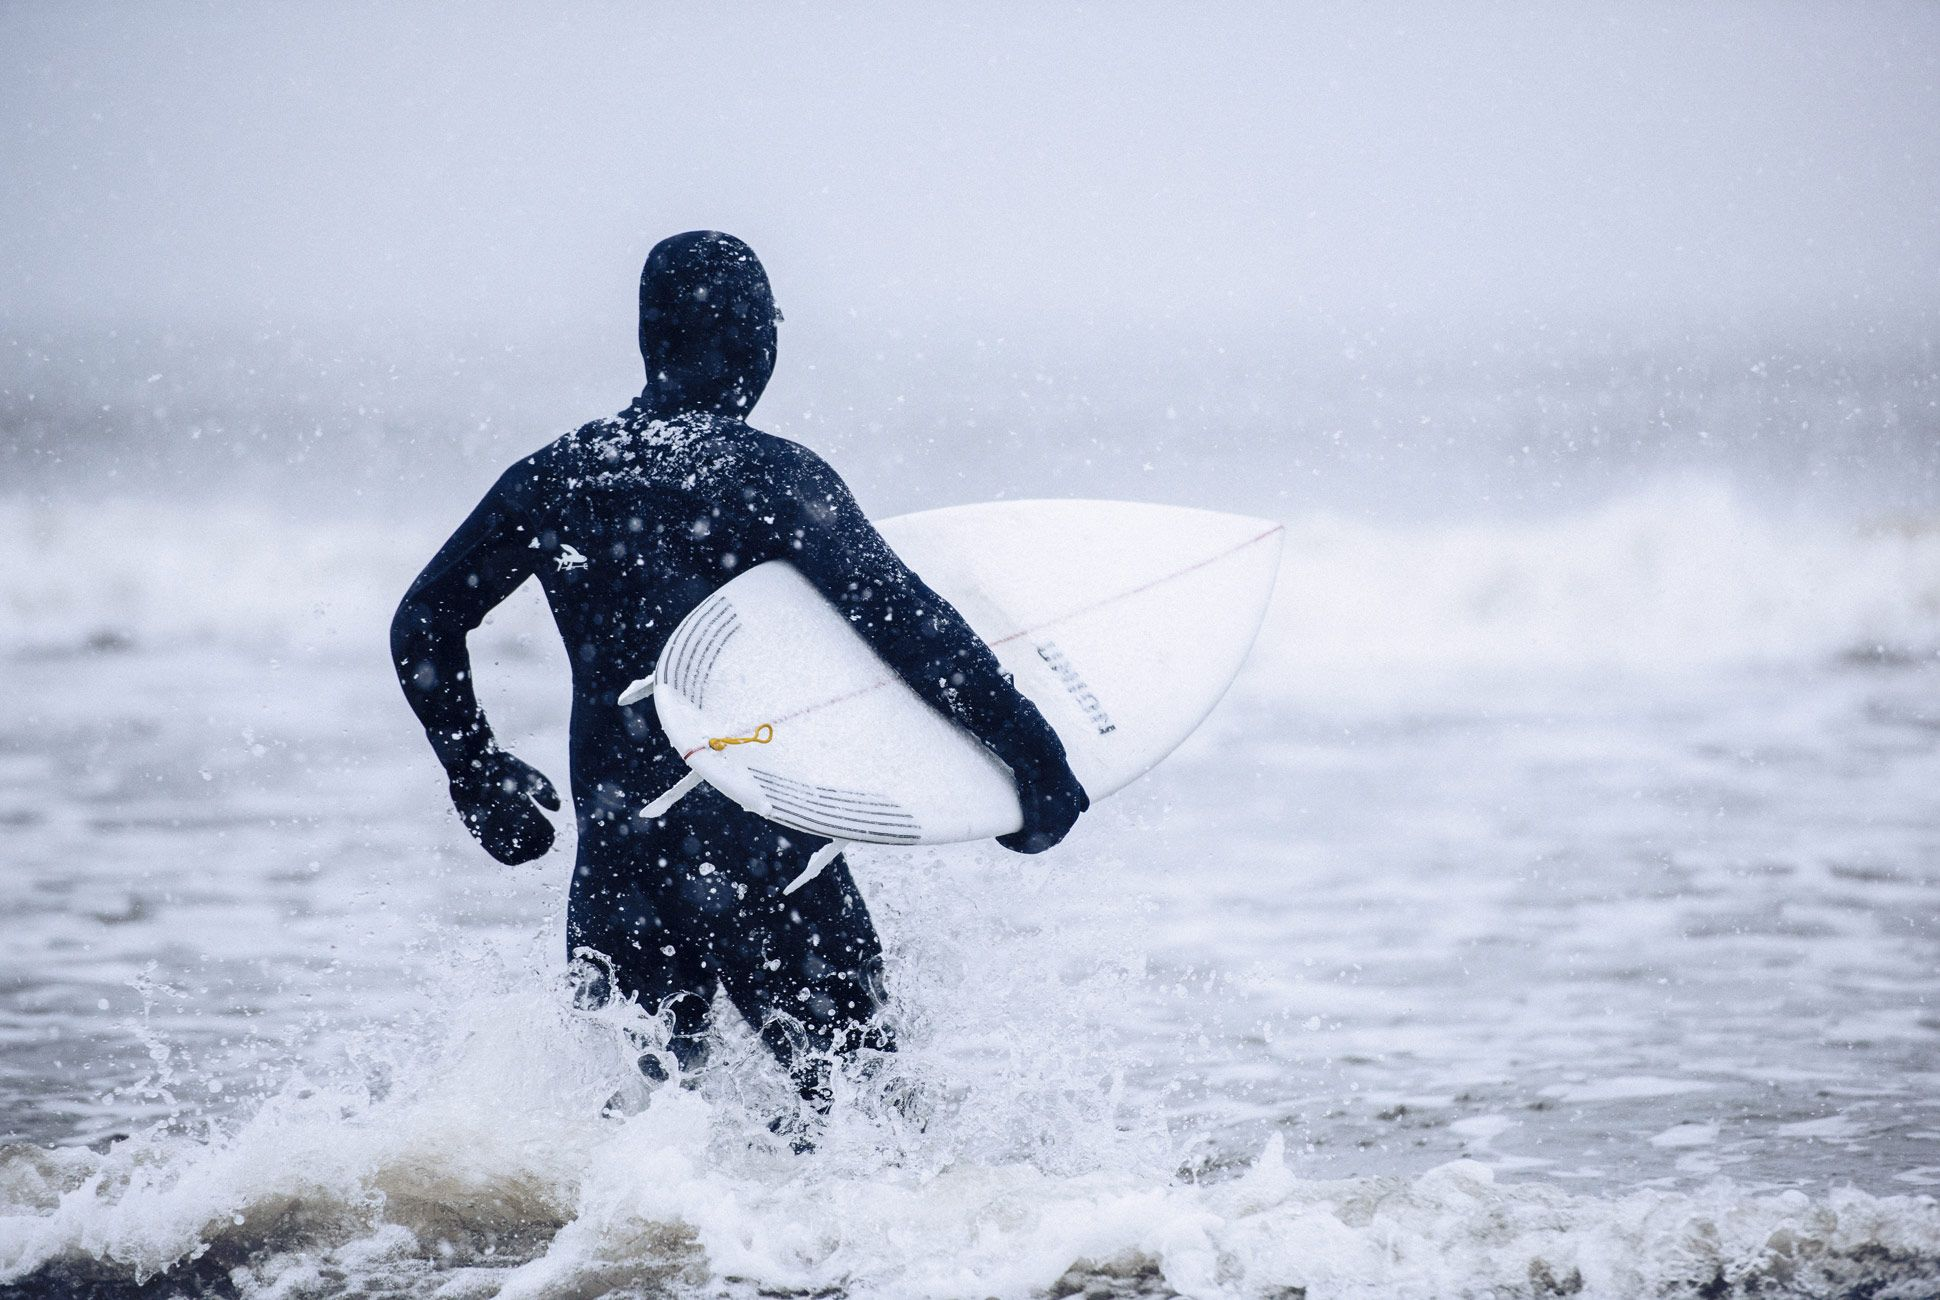 Winter-Surfing-Suit-AJ-Gear-Patrol-Slide-5